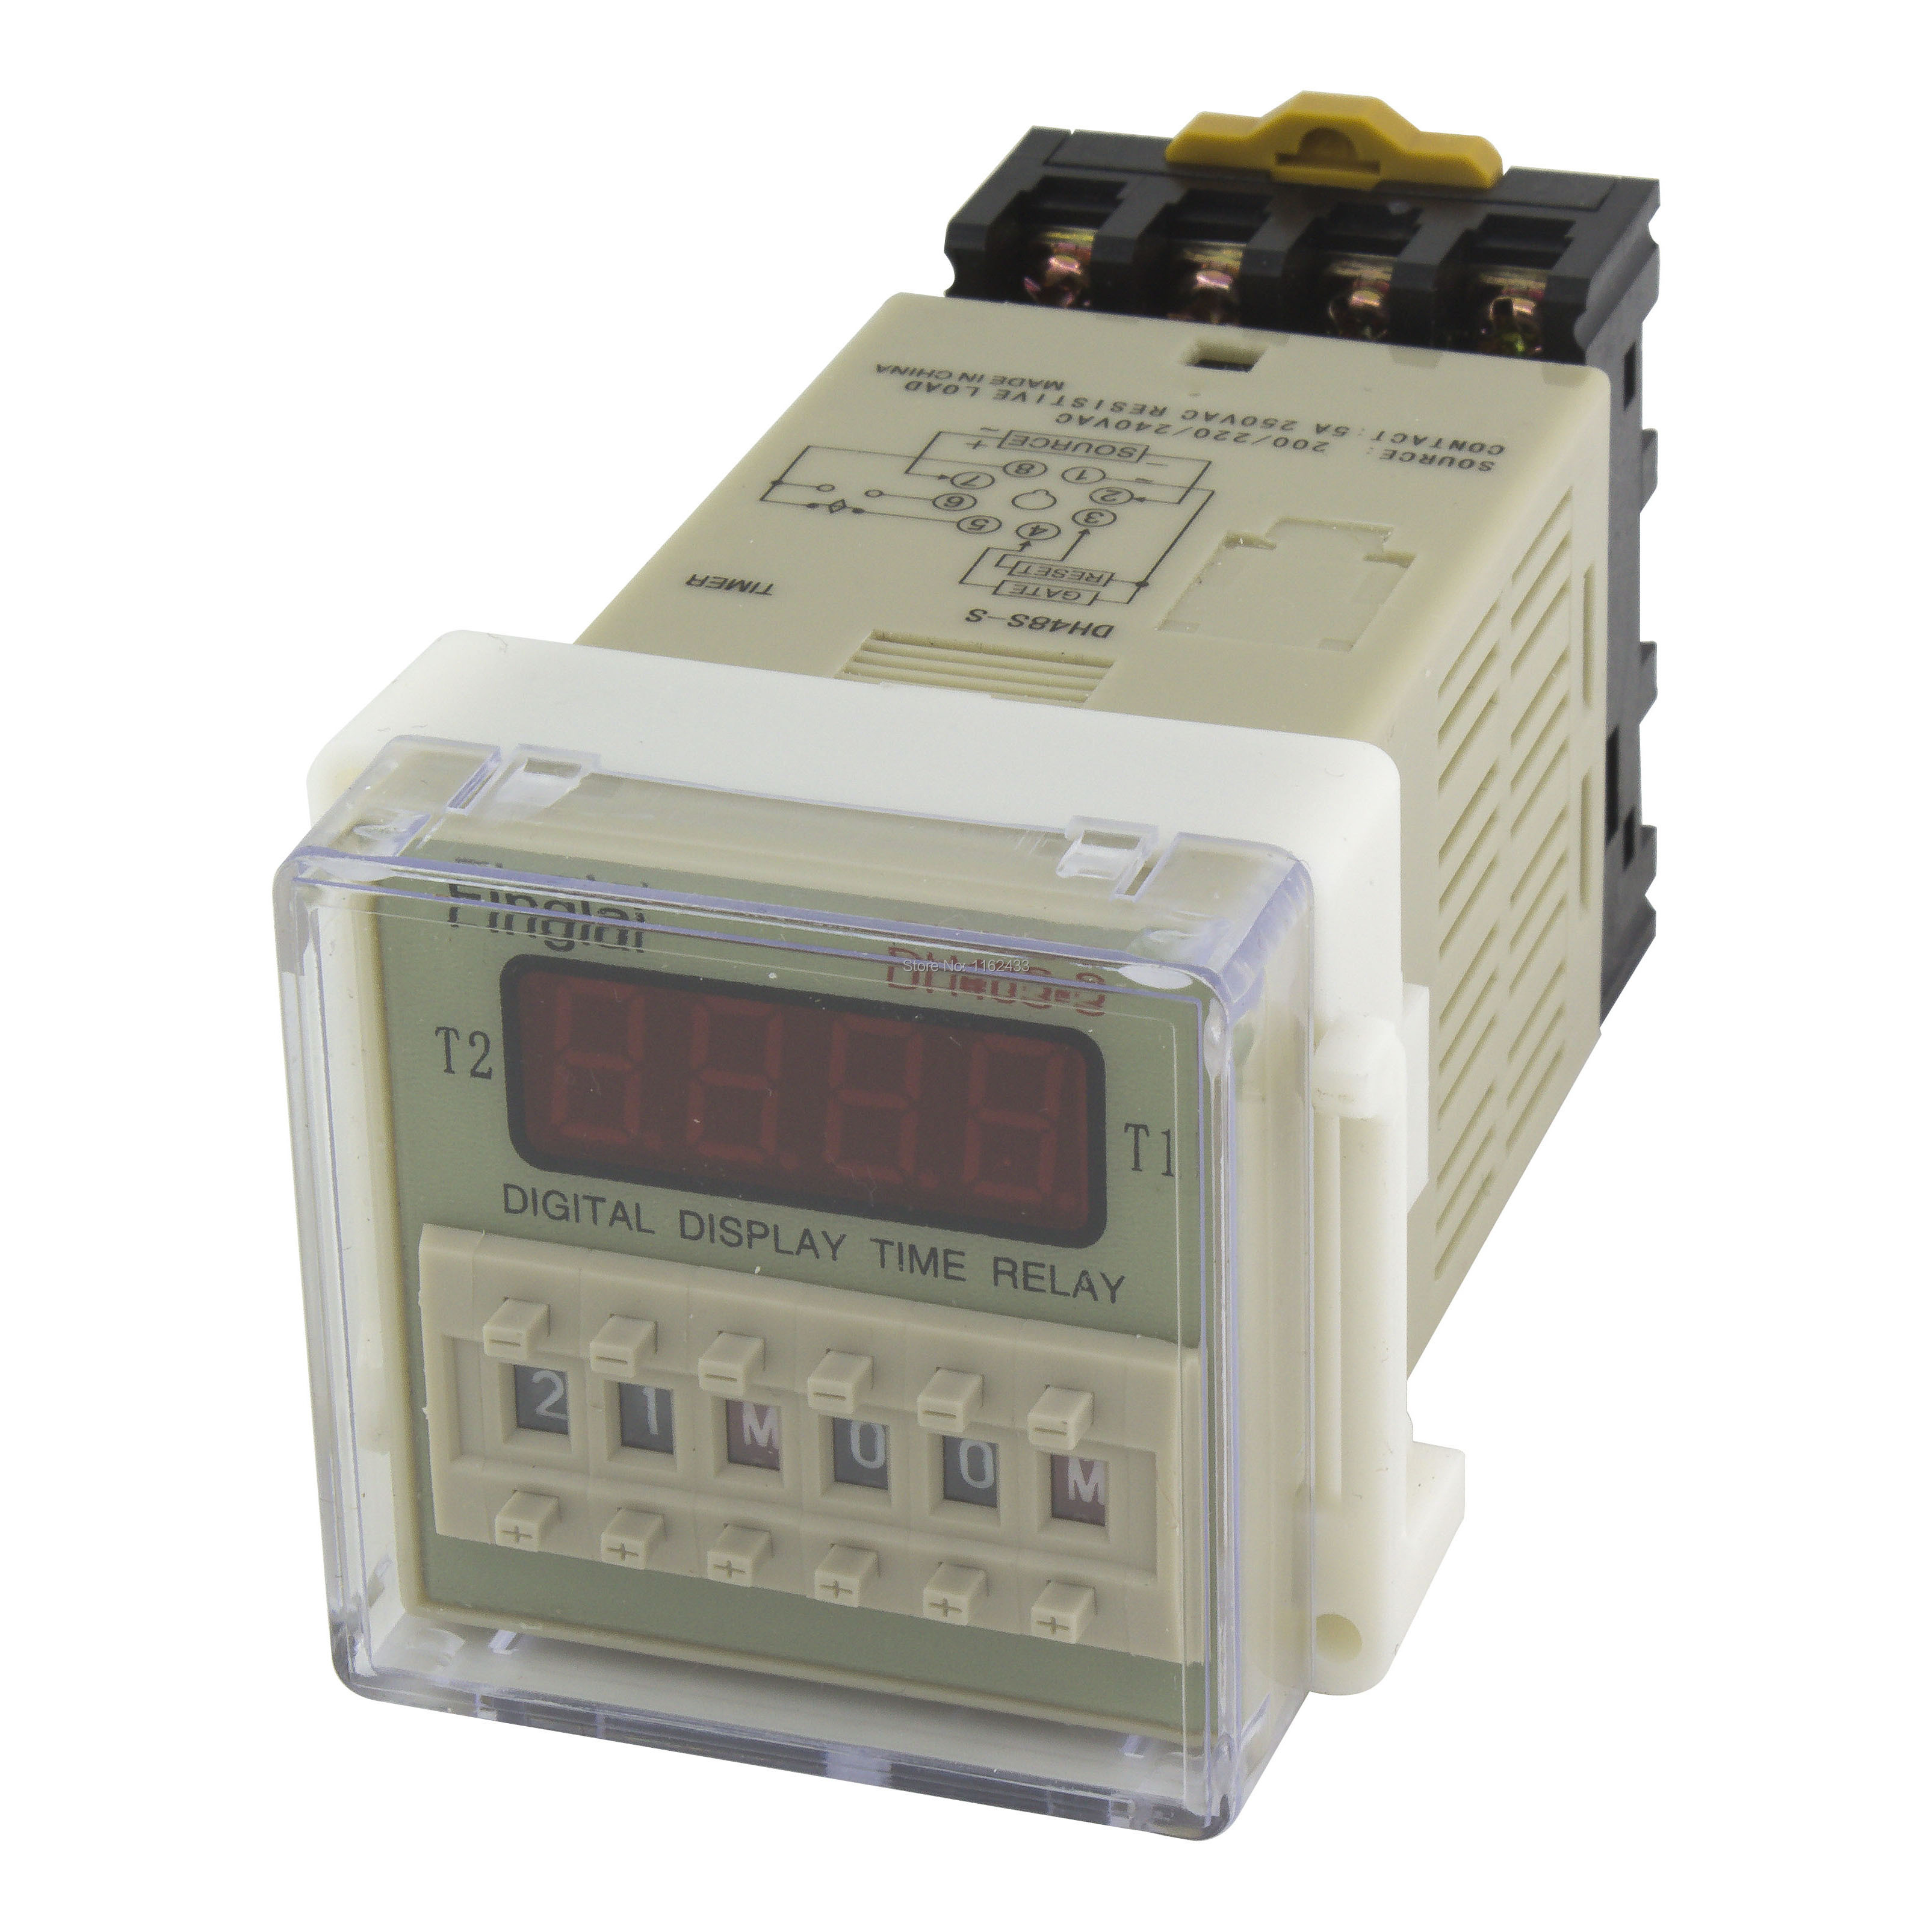 US $4.28  DH48S S repeat cycle SPDT time relay with socket DH48S series on